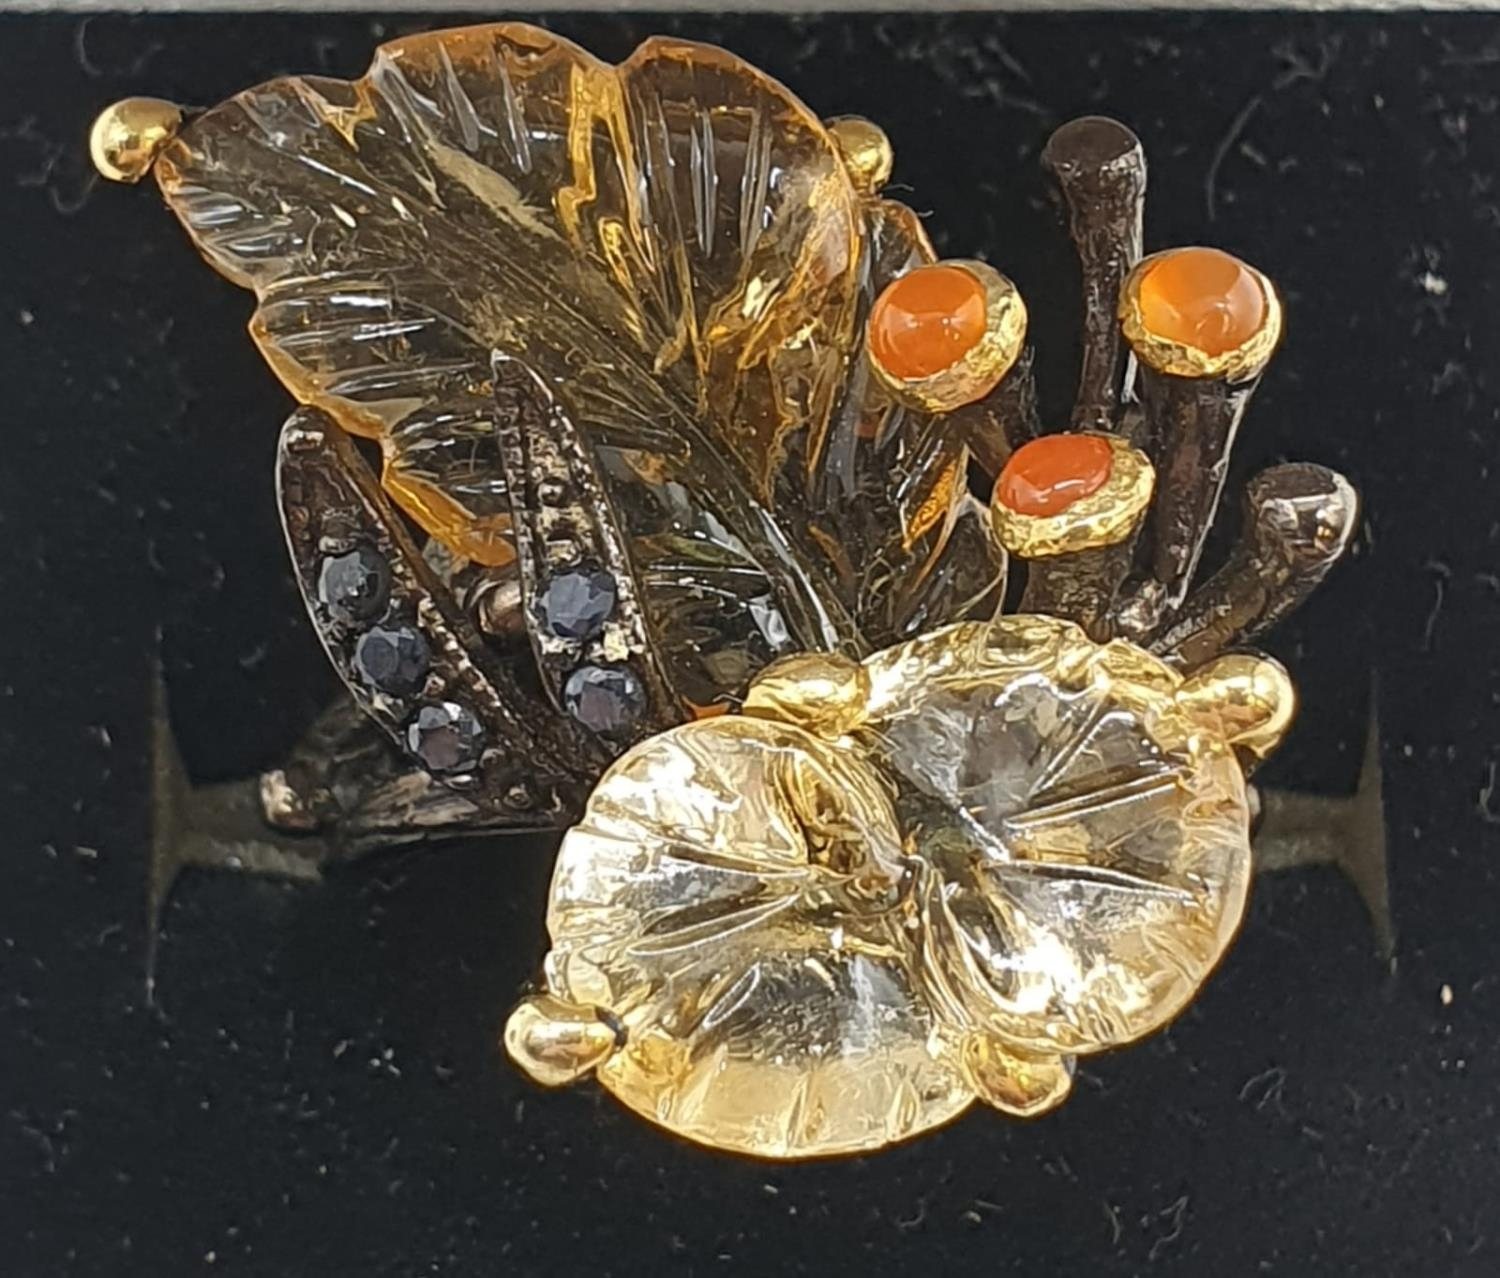 A unique Edwardian silver (unmarked) ring with carved semiprecious and precious stones (citrine, - Image 5 of 5